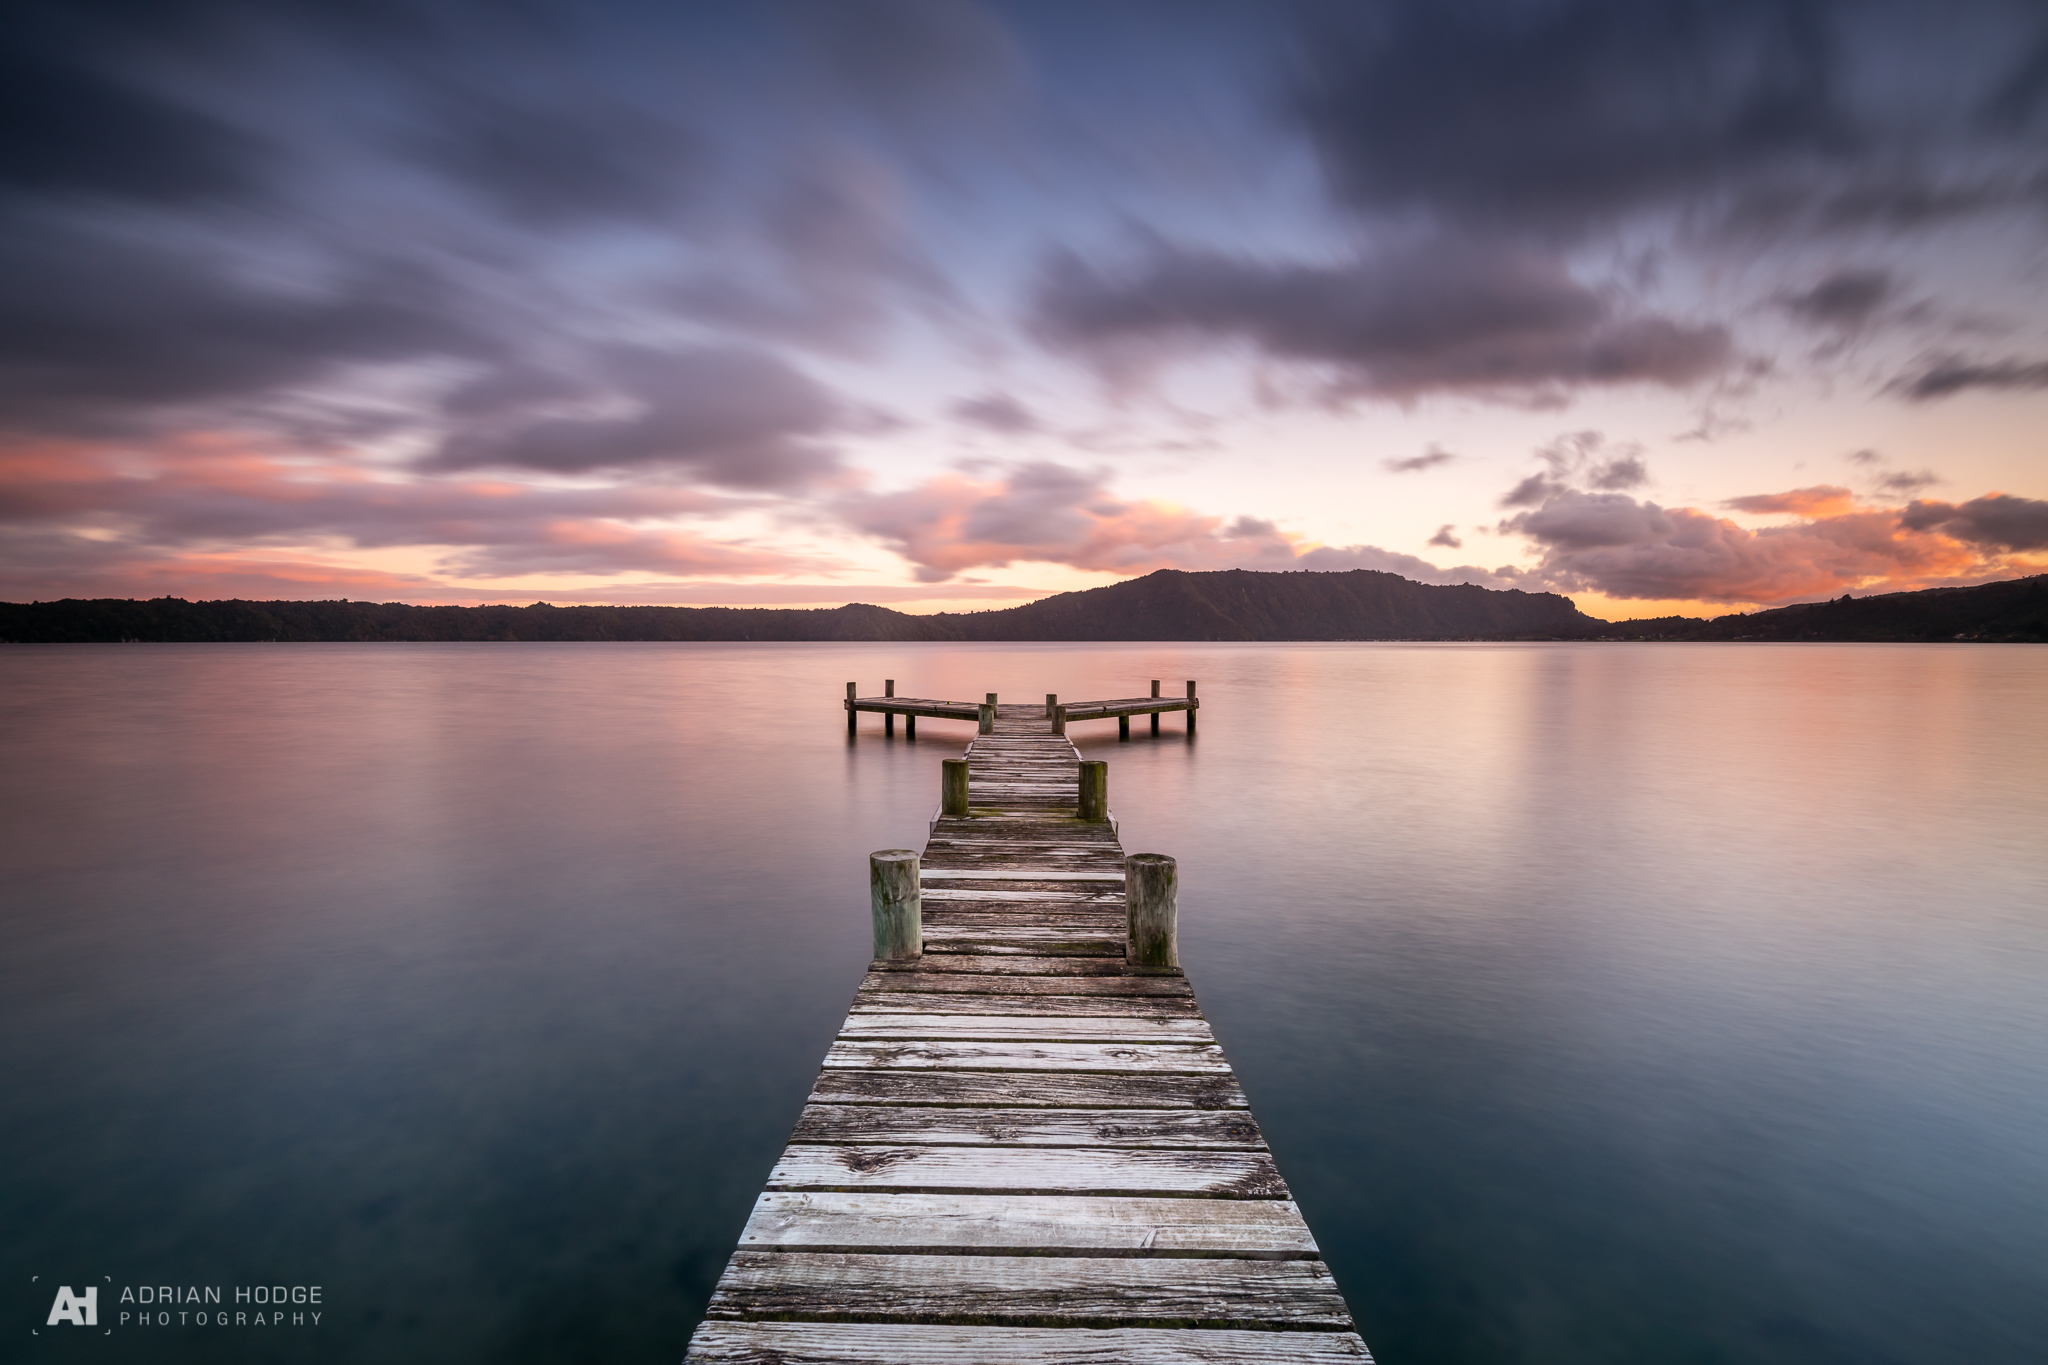 A long exposure of a jetty pointing straight out into a lake with a colourful pink sky at sunrise.